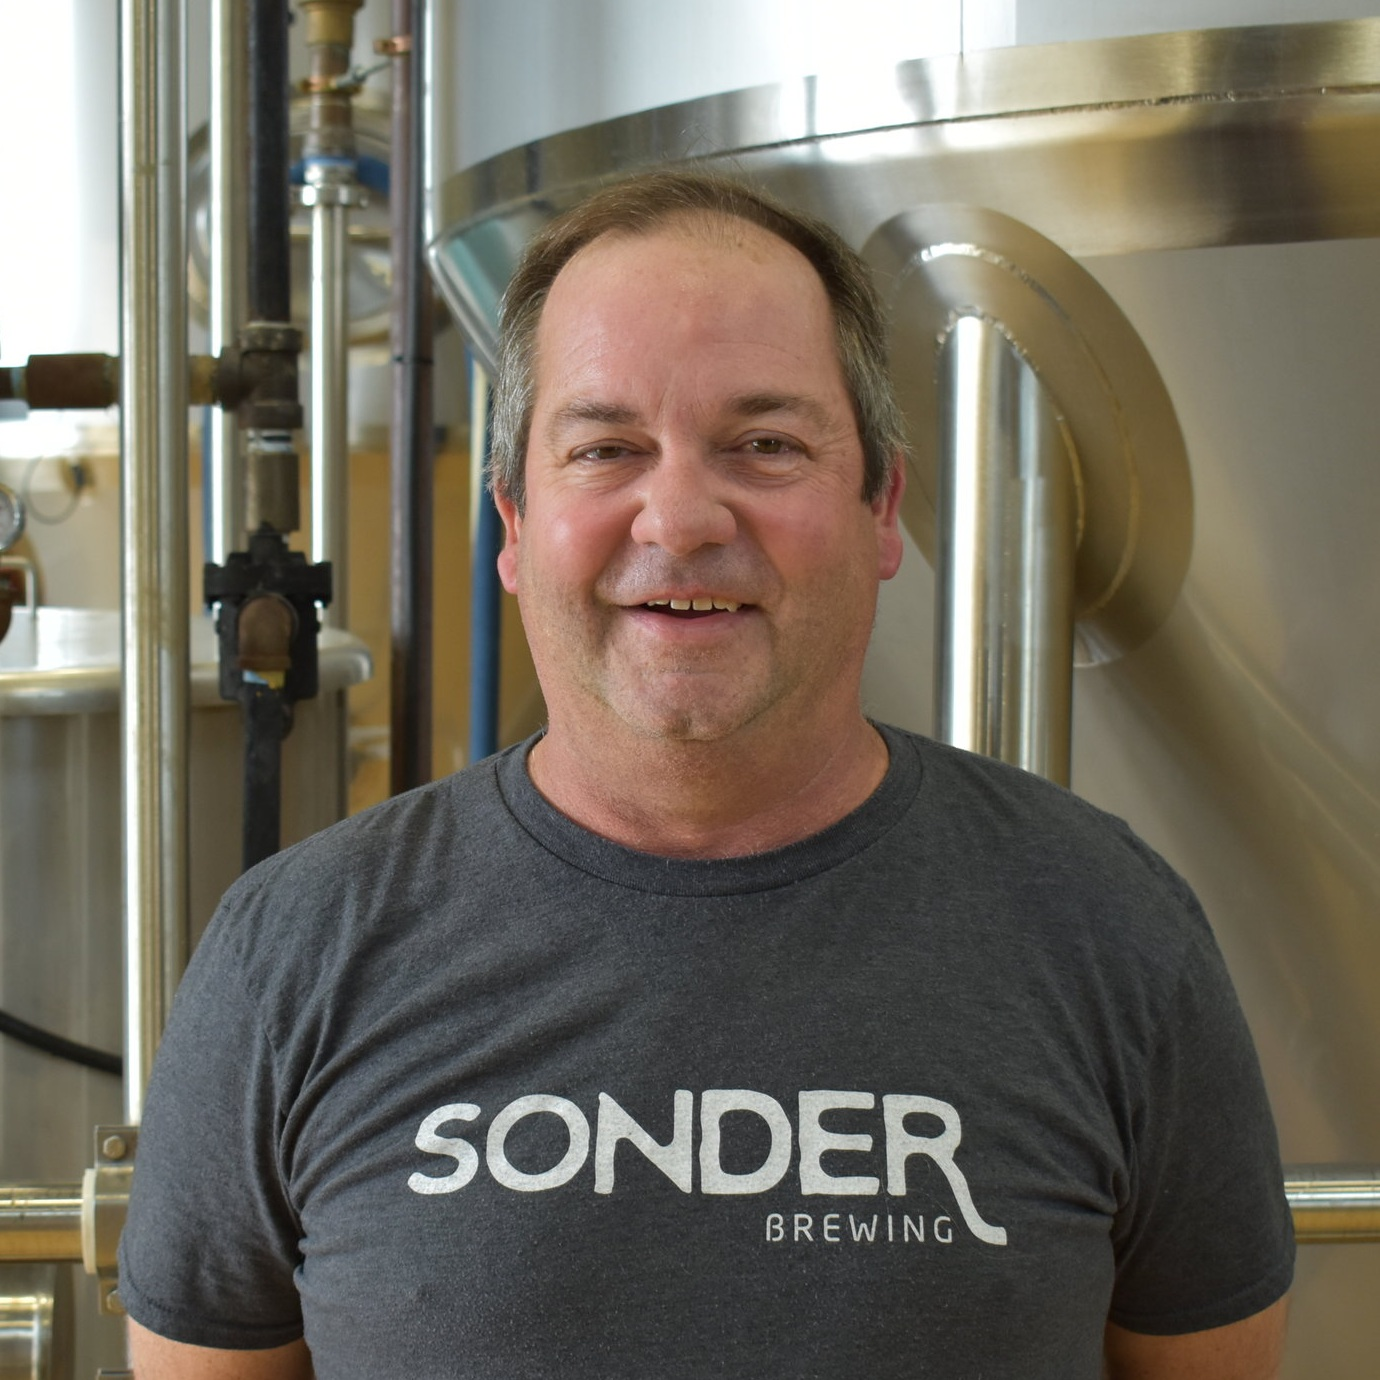 Mark - Bartender   Mark loves spending time with his family, playing golf, and enjoying some brews. The top item on his bucket list is playing Augusta National golf course, so hopefully he hits golf balls straight. He loves working at Sonder because he's able to recommend beer to consumers based on what they describe is their ideal style. His favorite style of beer is IPAs, and his favorite Sonder beer is You Betcha!